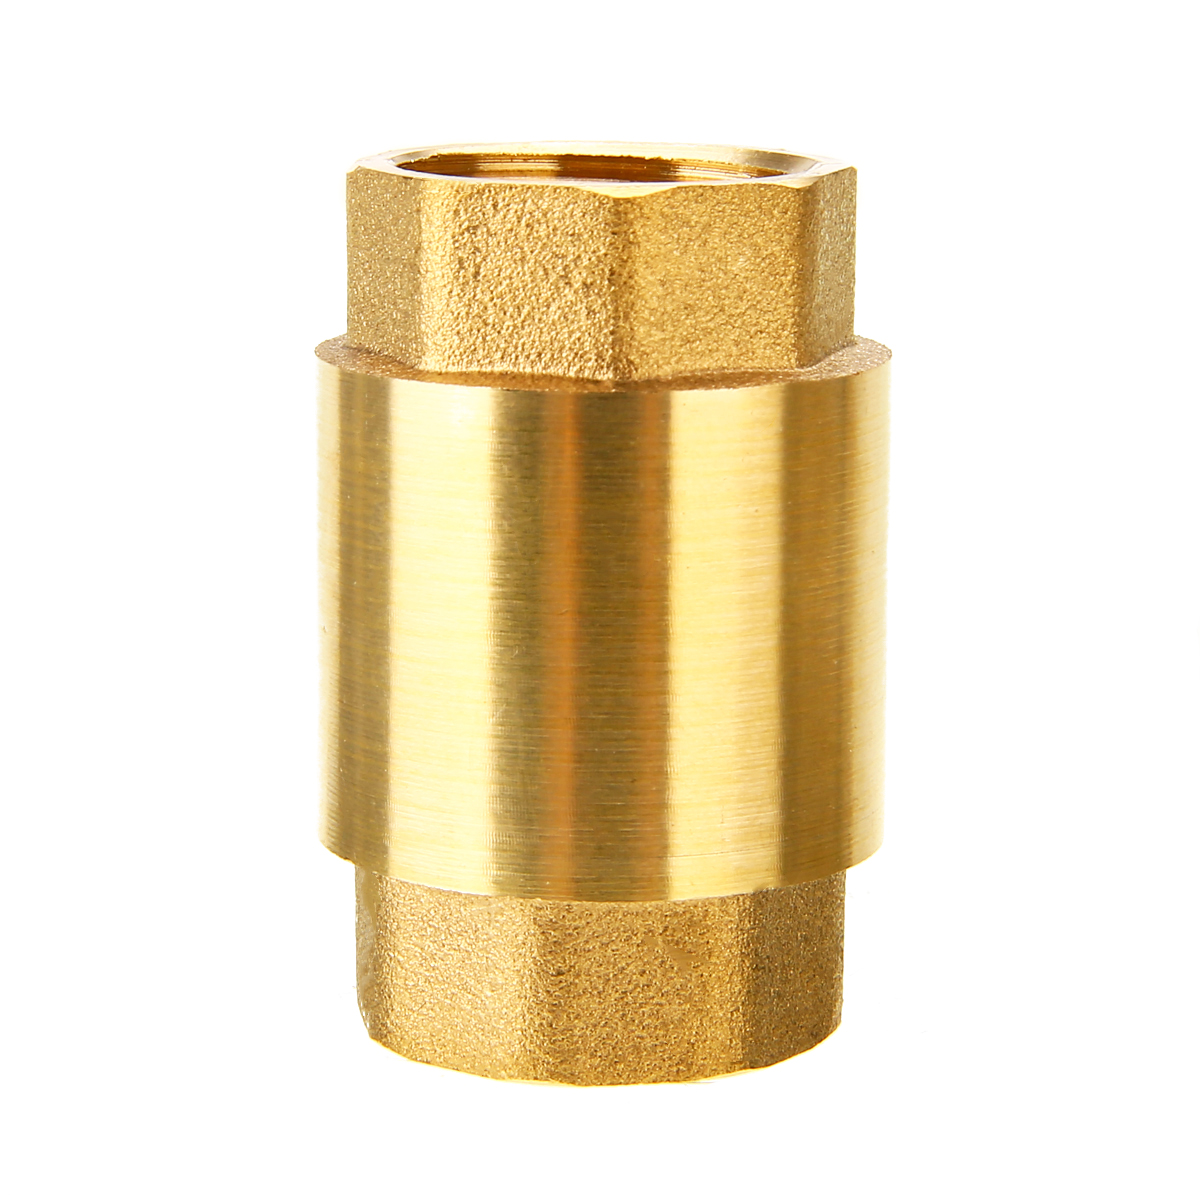 hight resolution of 1pc 1 2 npt brass check valve high quality thread in line